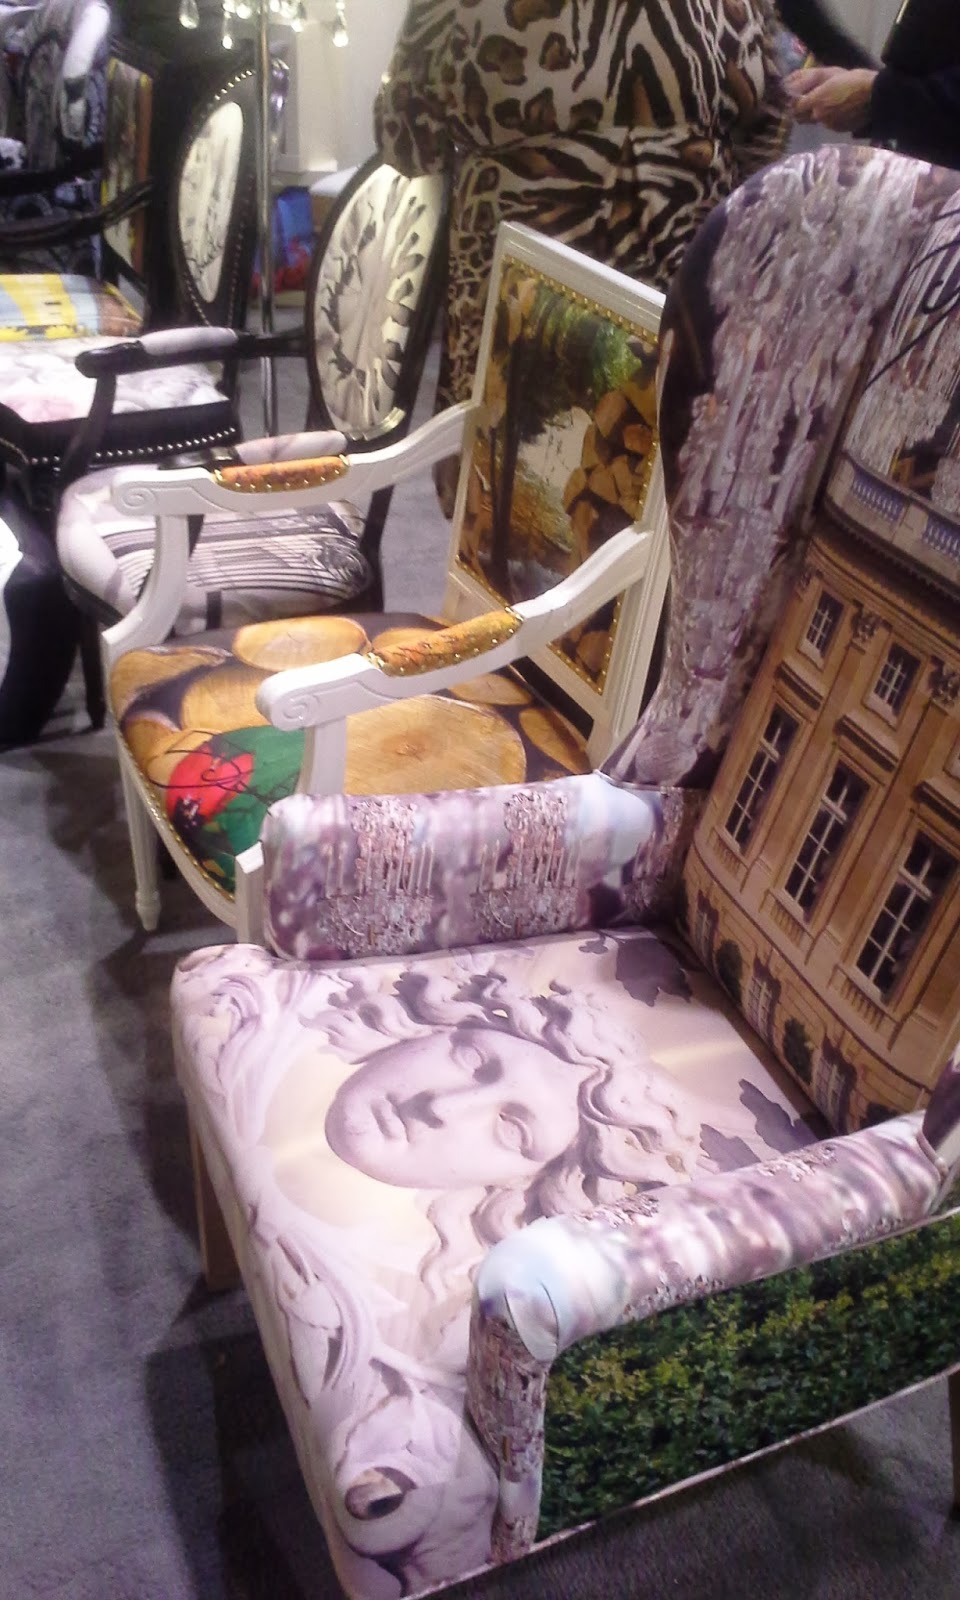 Upholstered Chairs at The Interior Design Show in Toronto, fashion, interior design blogger style Melanie.Ps The Purple Scarf